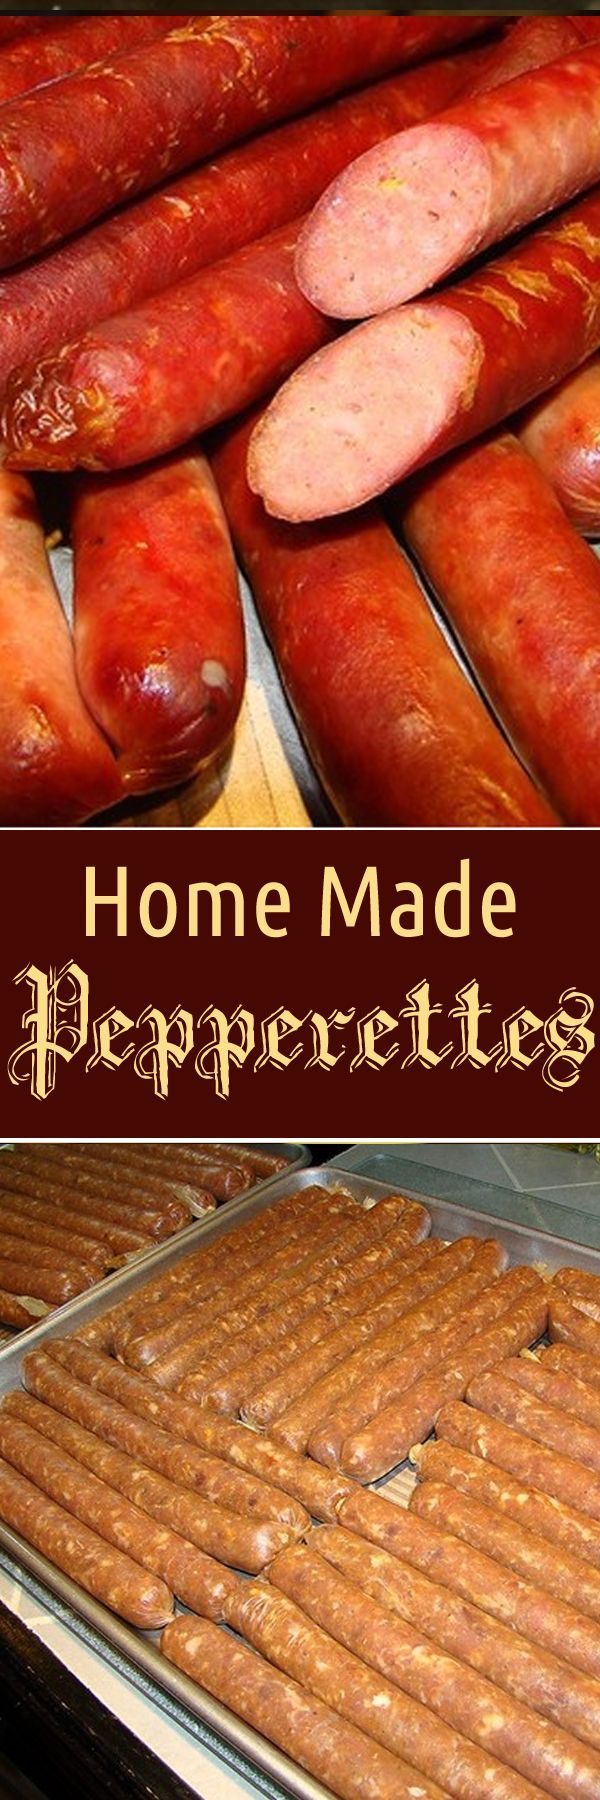 Home Made Pepperettes. For more info, please visit http://www.recipezazz.com/